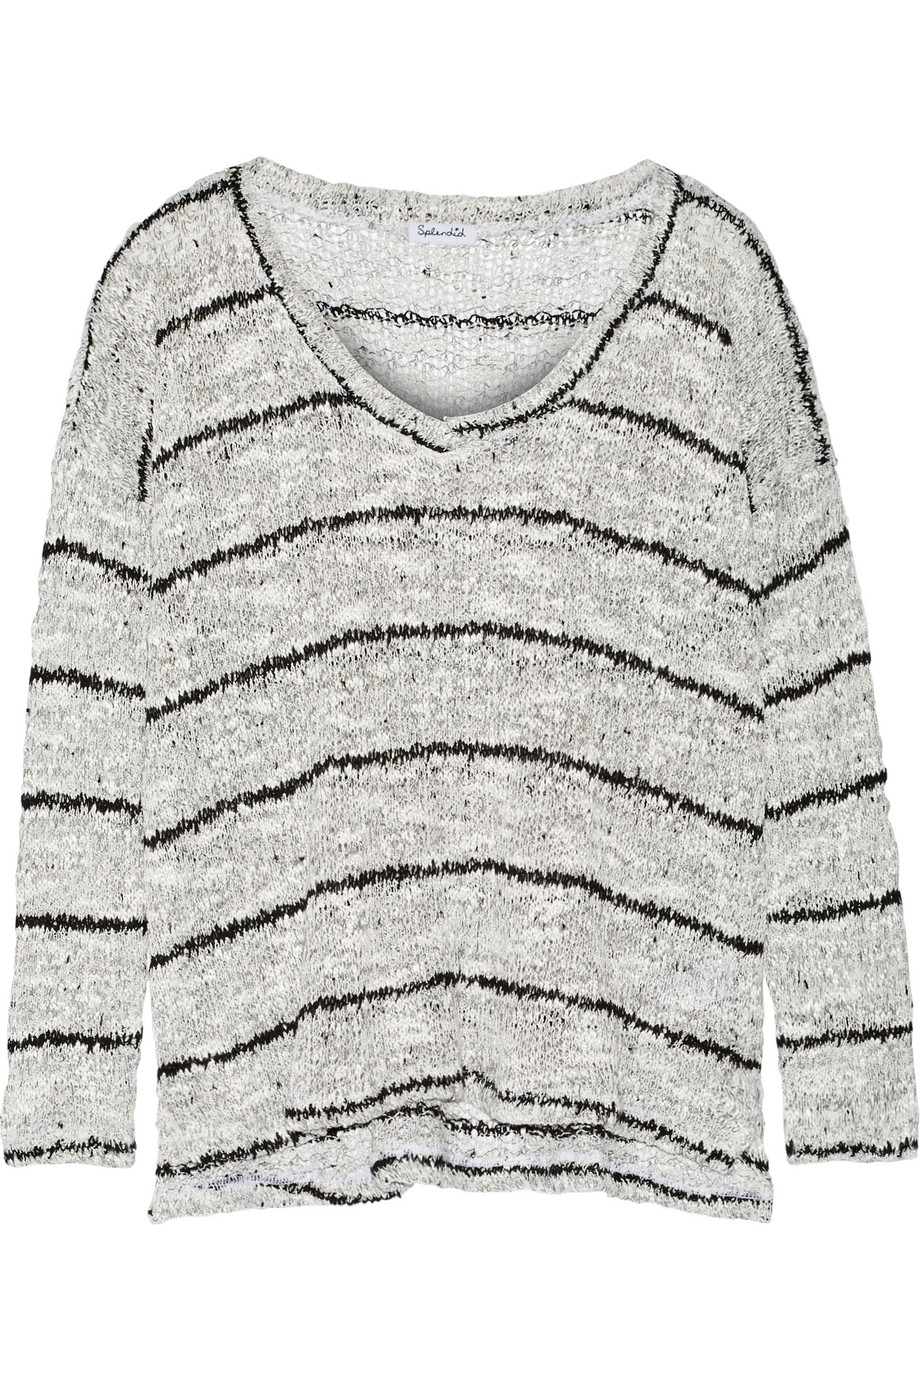 Splendid Broome Striped Knitted Sweater